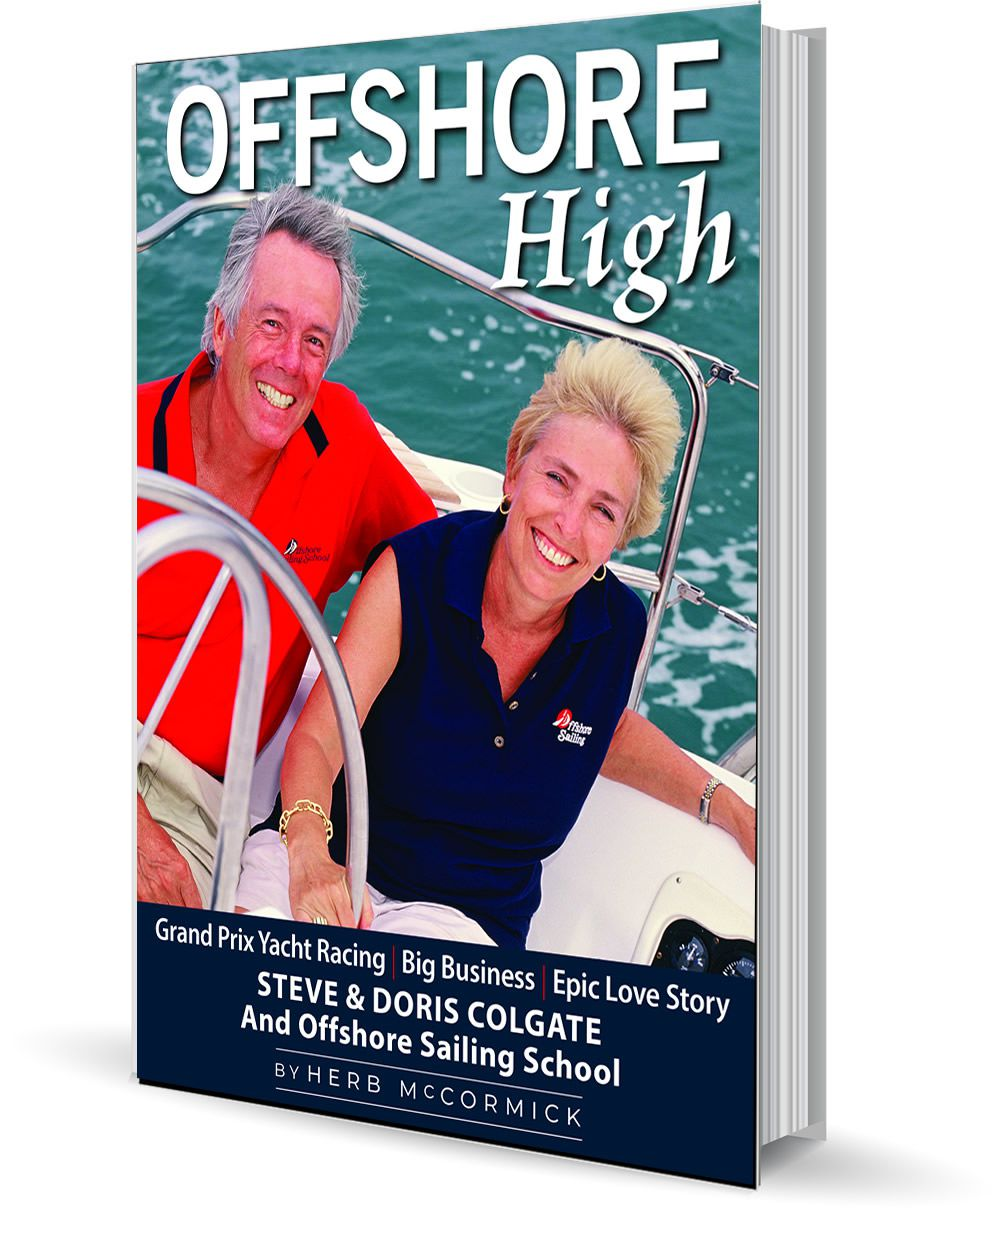 In the realms of both the marine industry and competitive sailboat racing at its highest levels, few if any couples have matched the accomplishments of Steve and Doris Colgate, the longtime proprietors of the world-renowned Offshore Sailing School: With over 160,000 graduates, no one has taught more novices how to sail than Offshore. A scion of the Colgate family of Colgate-Palmolive fame, and the daughter of an award-winning scientist, Steve and Doris seem an unlikely match. Steve honed his skills as a world-class racing sailor on Long Island Sound, and after a stint in the Air Force and a return to New York, almost by happenstance he opened a sailing school… where he met his future wife. Doris was a pioneer in the sailing world, a world dominated by men. She became the founder of the National Women's Sailing Association, among other yachting-industry initiatives. Their shared story is fascinating on several levels: as an insider's take on yacht racing at the top levels; as a case study in a truly unique and successful business; and, finally, as a good old-fashioned love story.